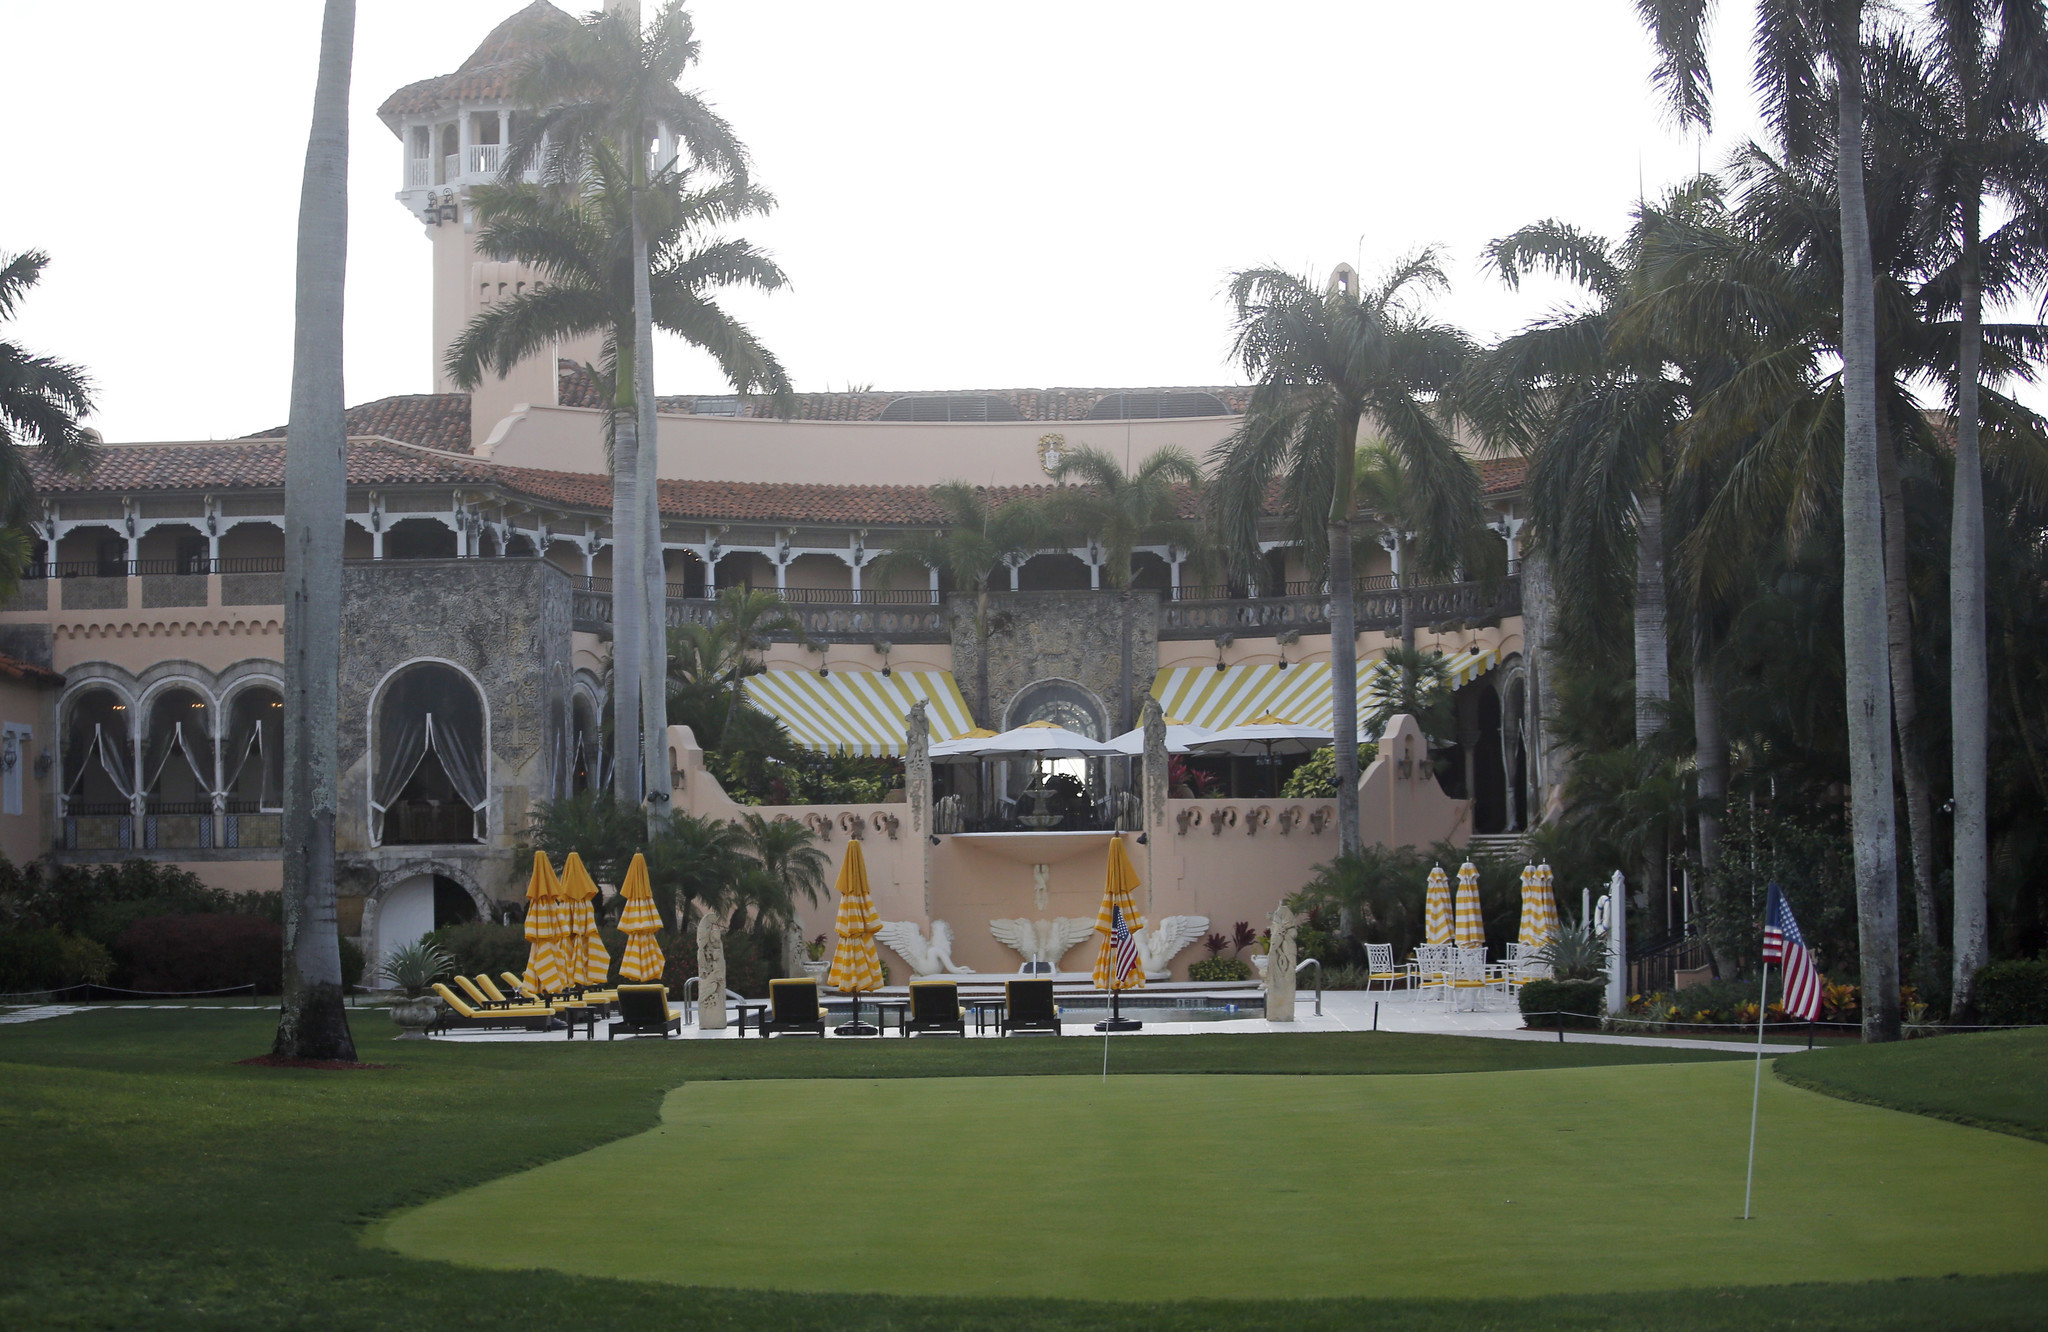 Charity fundraisers canceled at Mar-a-Lago after Trump's Charlottesville remarks